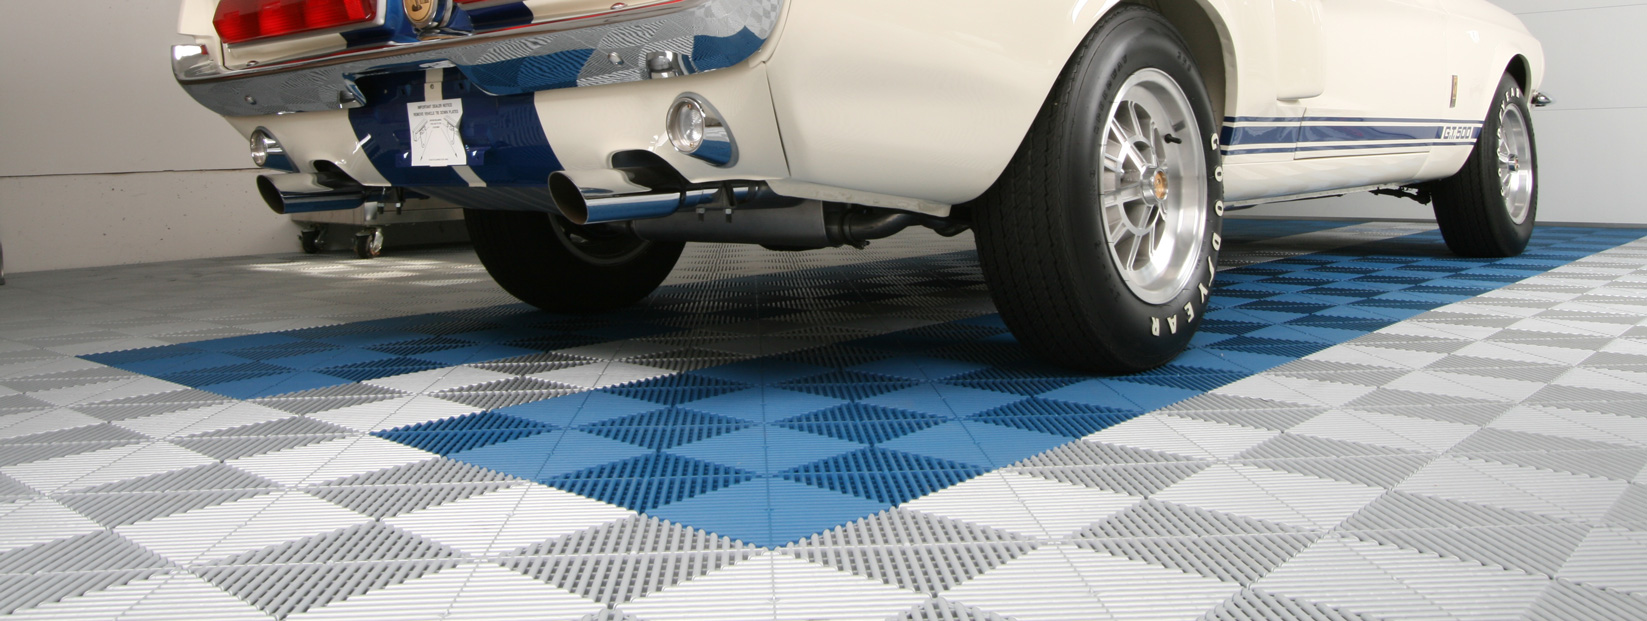 Garage Flooring Tiles Lincoln